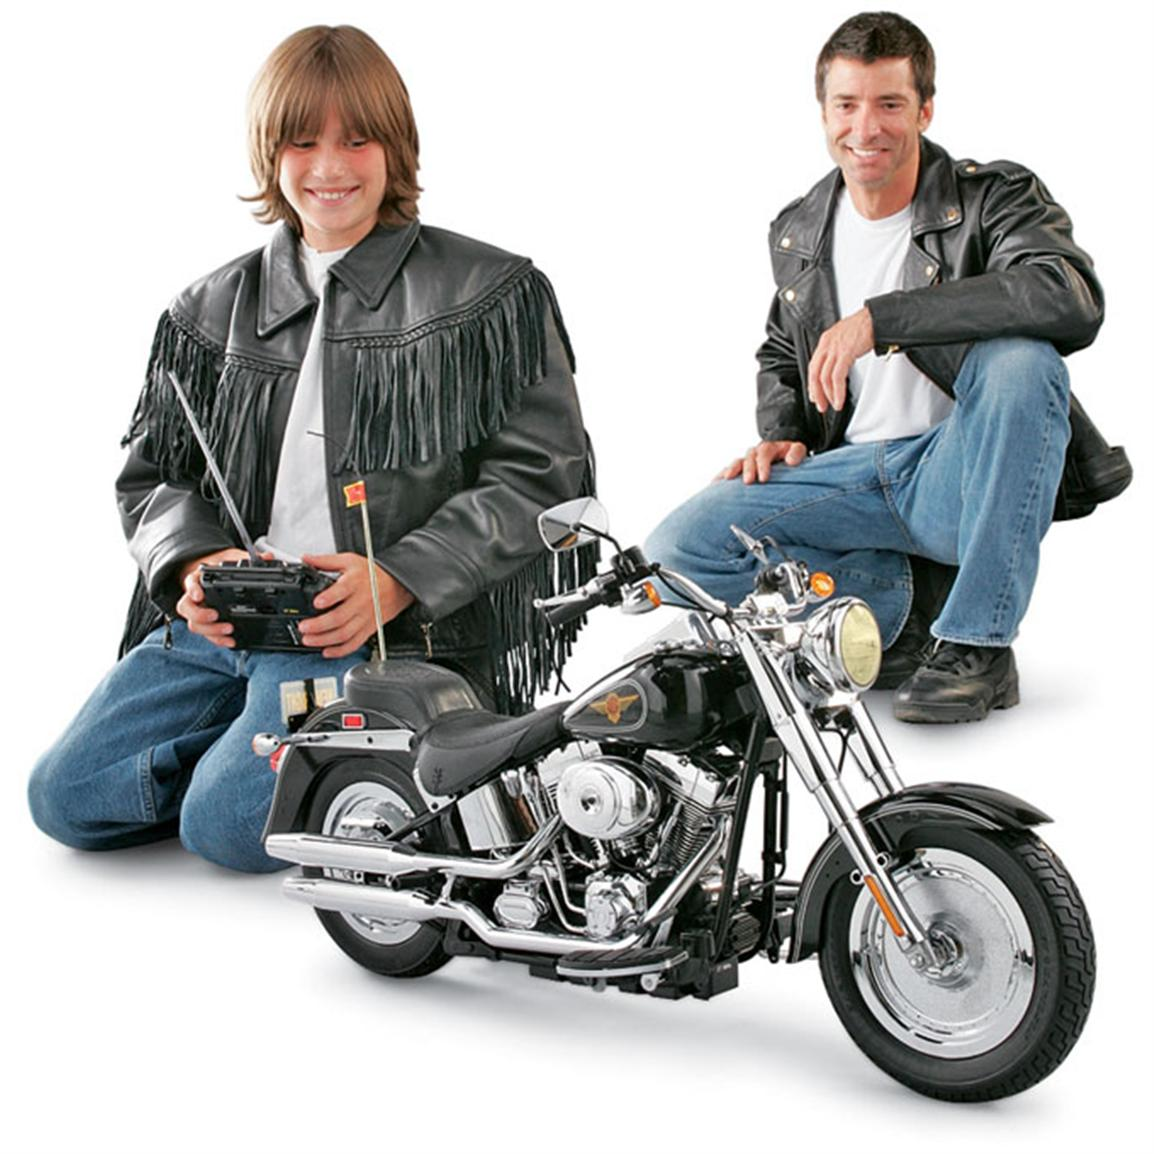 Motorcycle Toys For Boys : Radio controlled harley davidson fat boy motorcycle